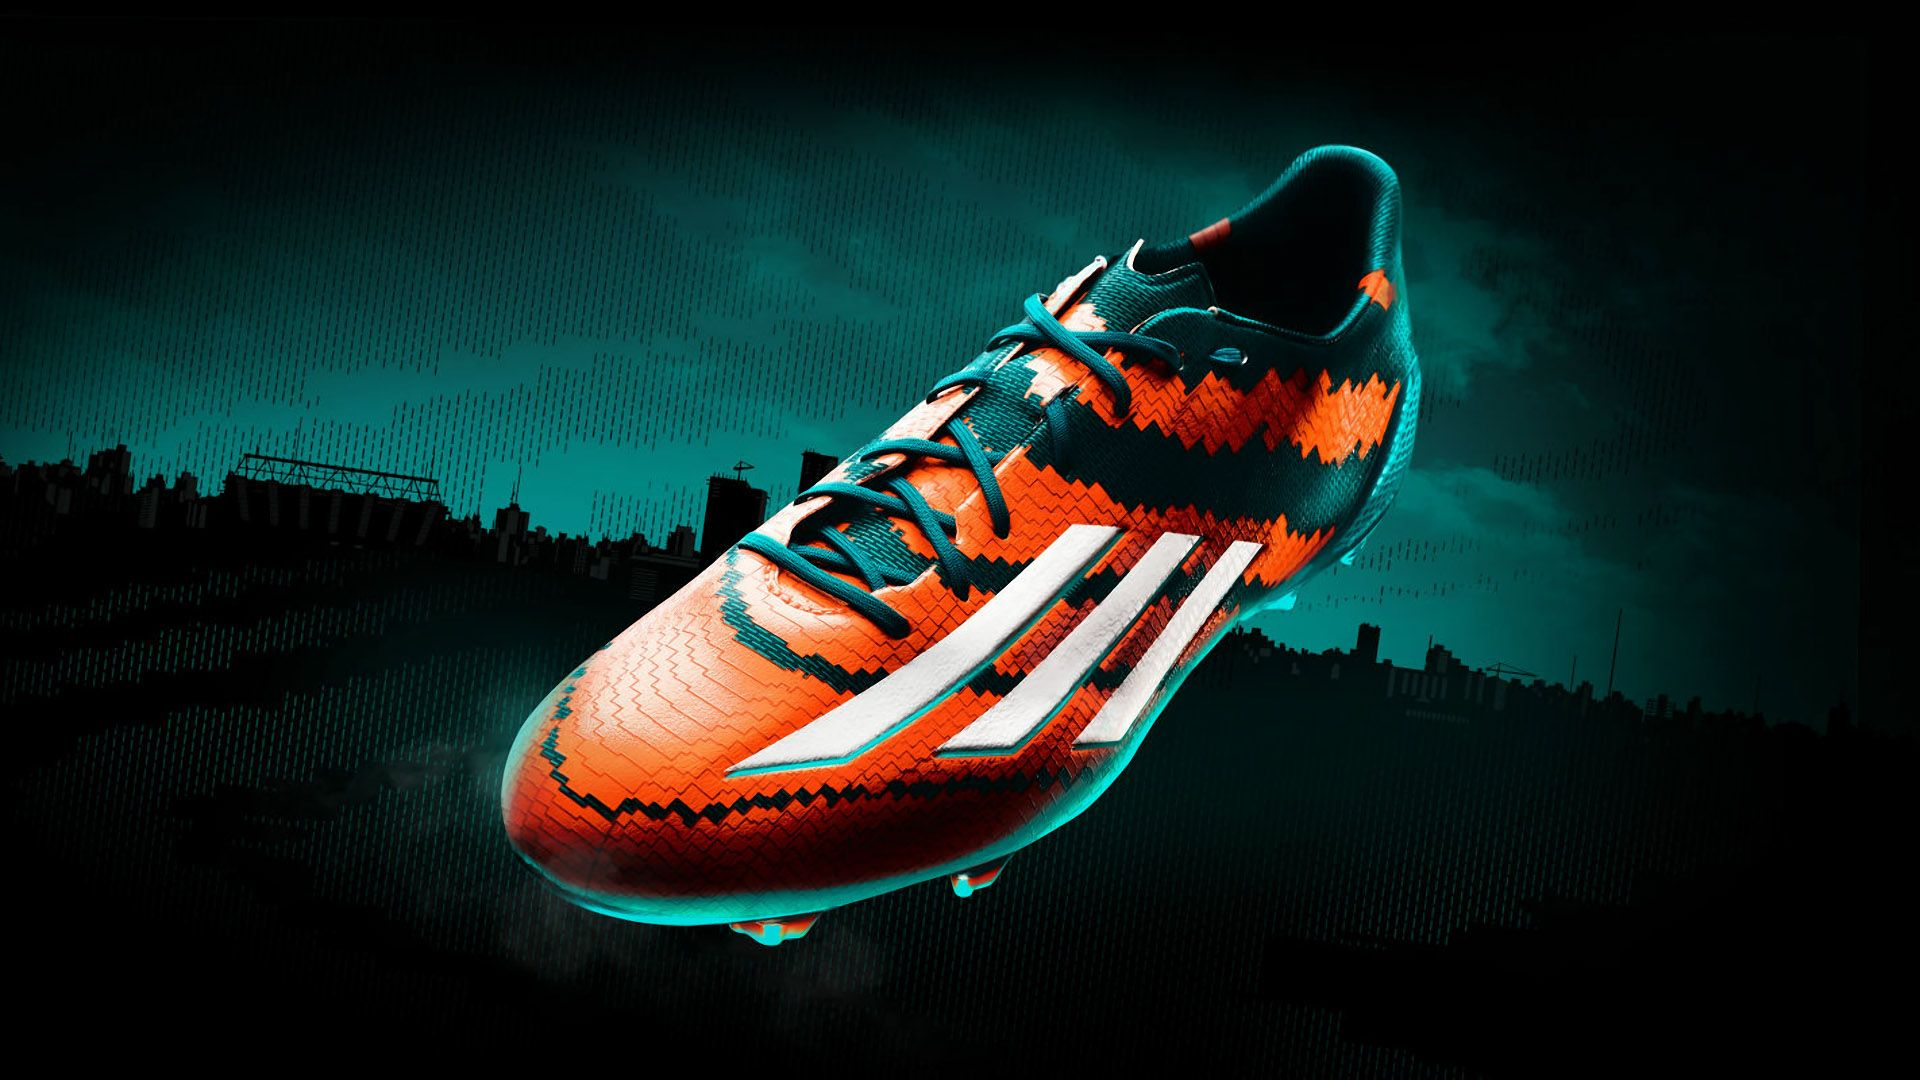 Adidas Shoes Wallpapers HD Free Download.